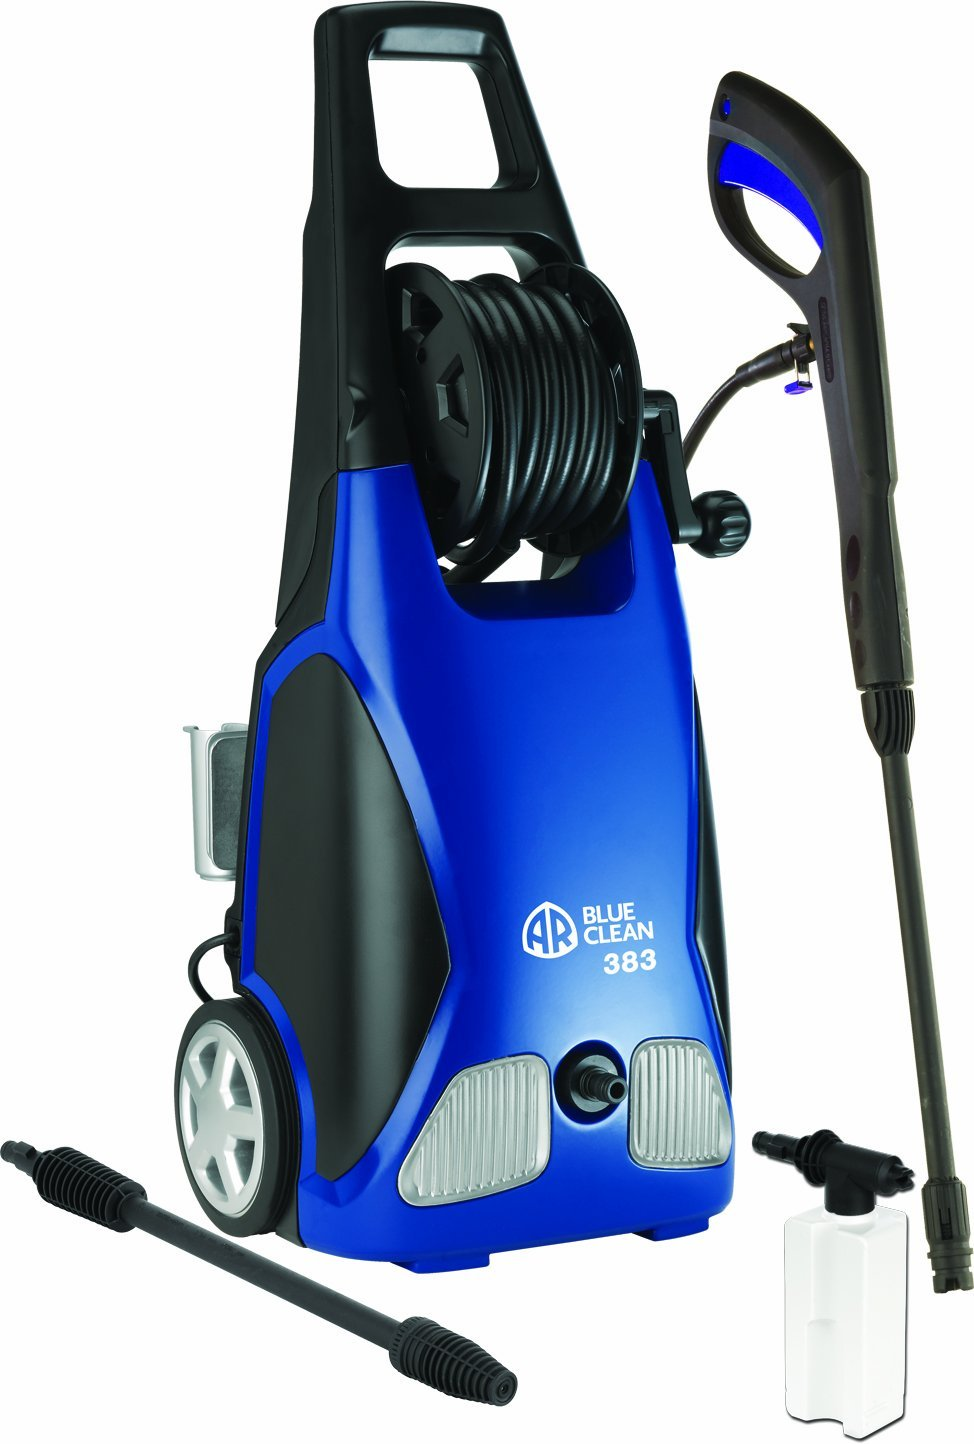 Blue clean pressure washer